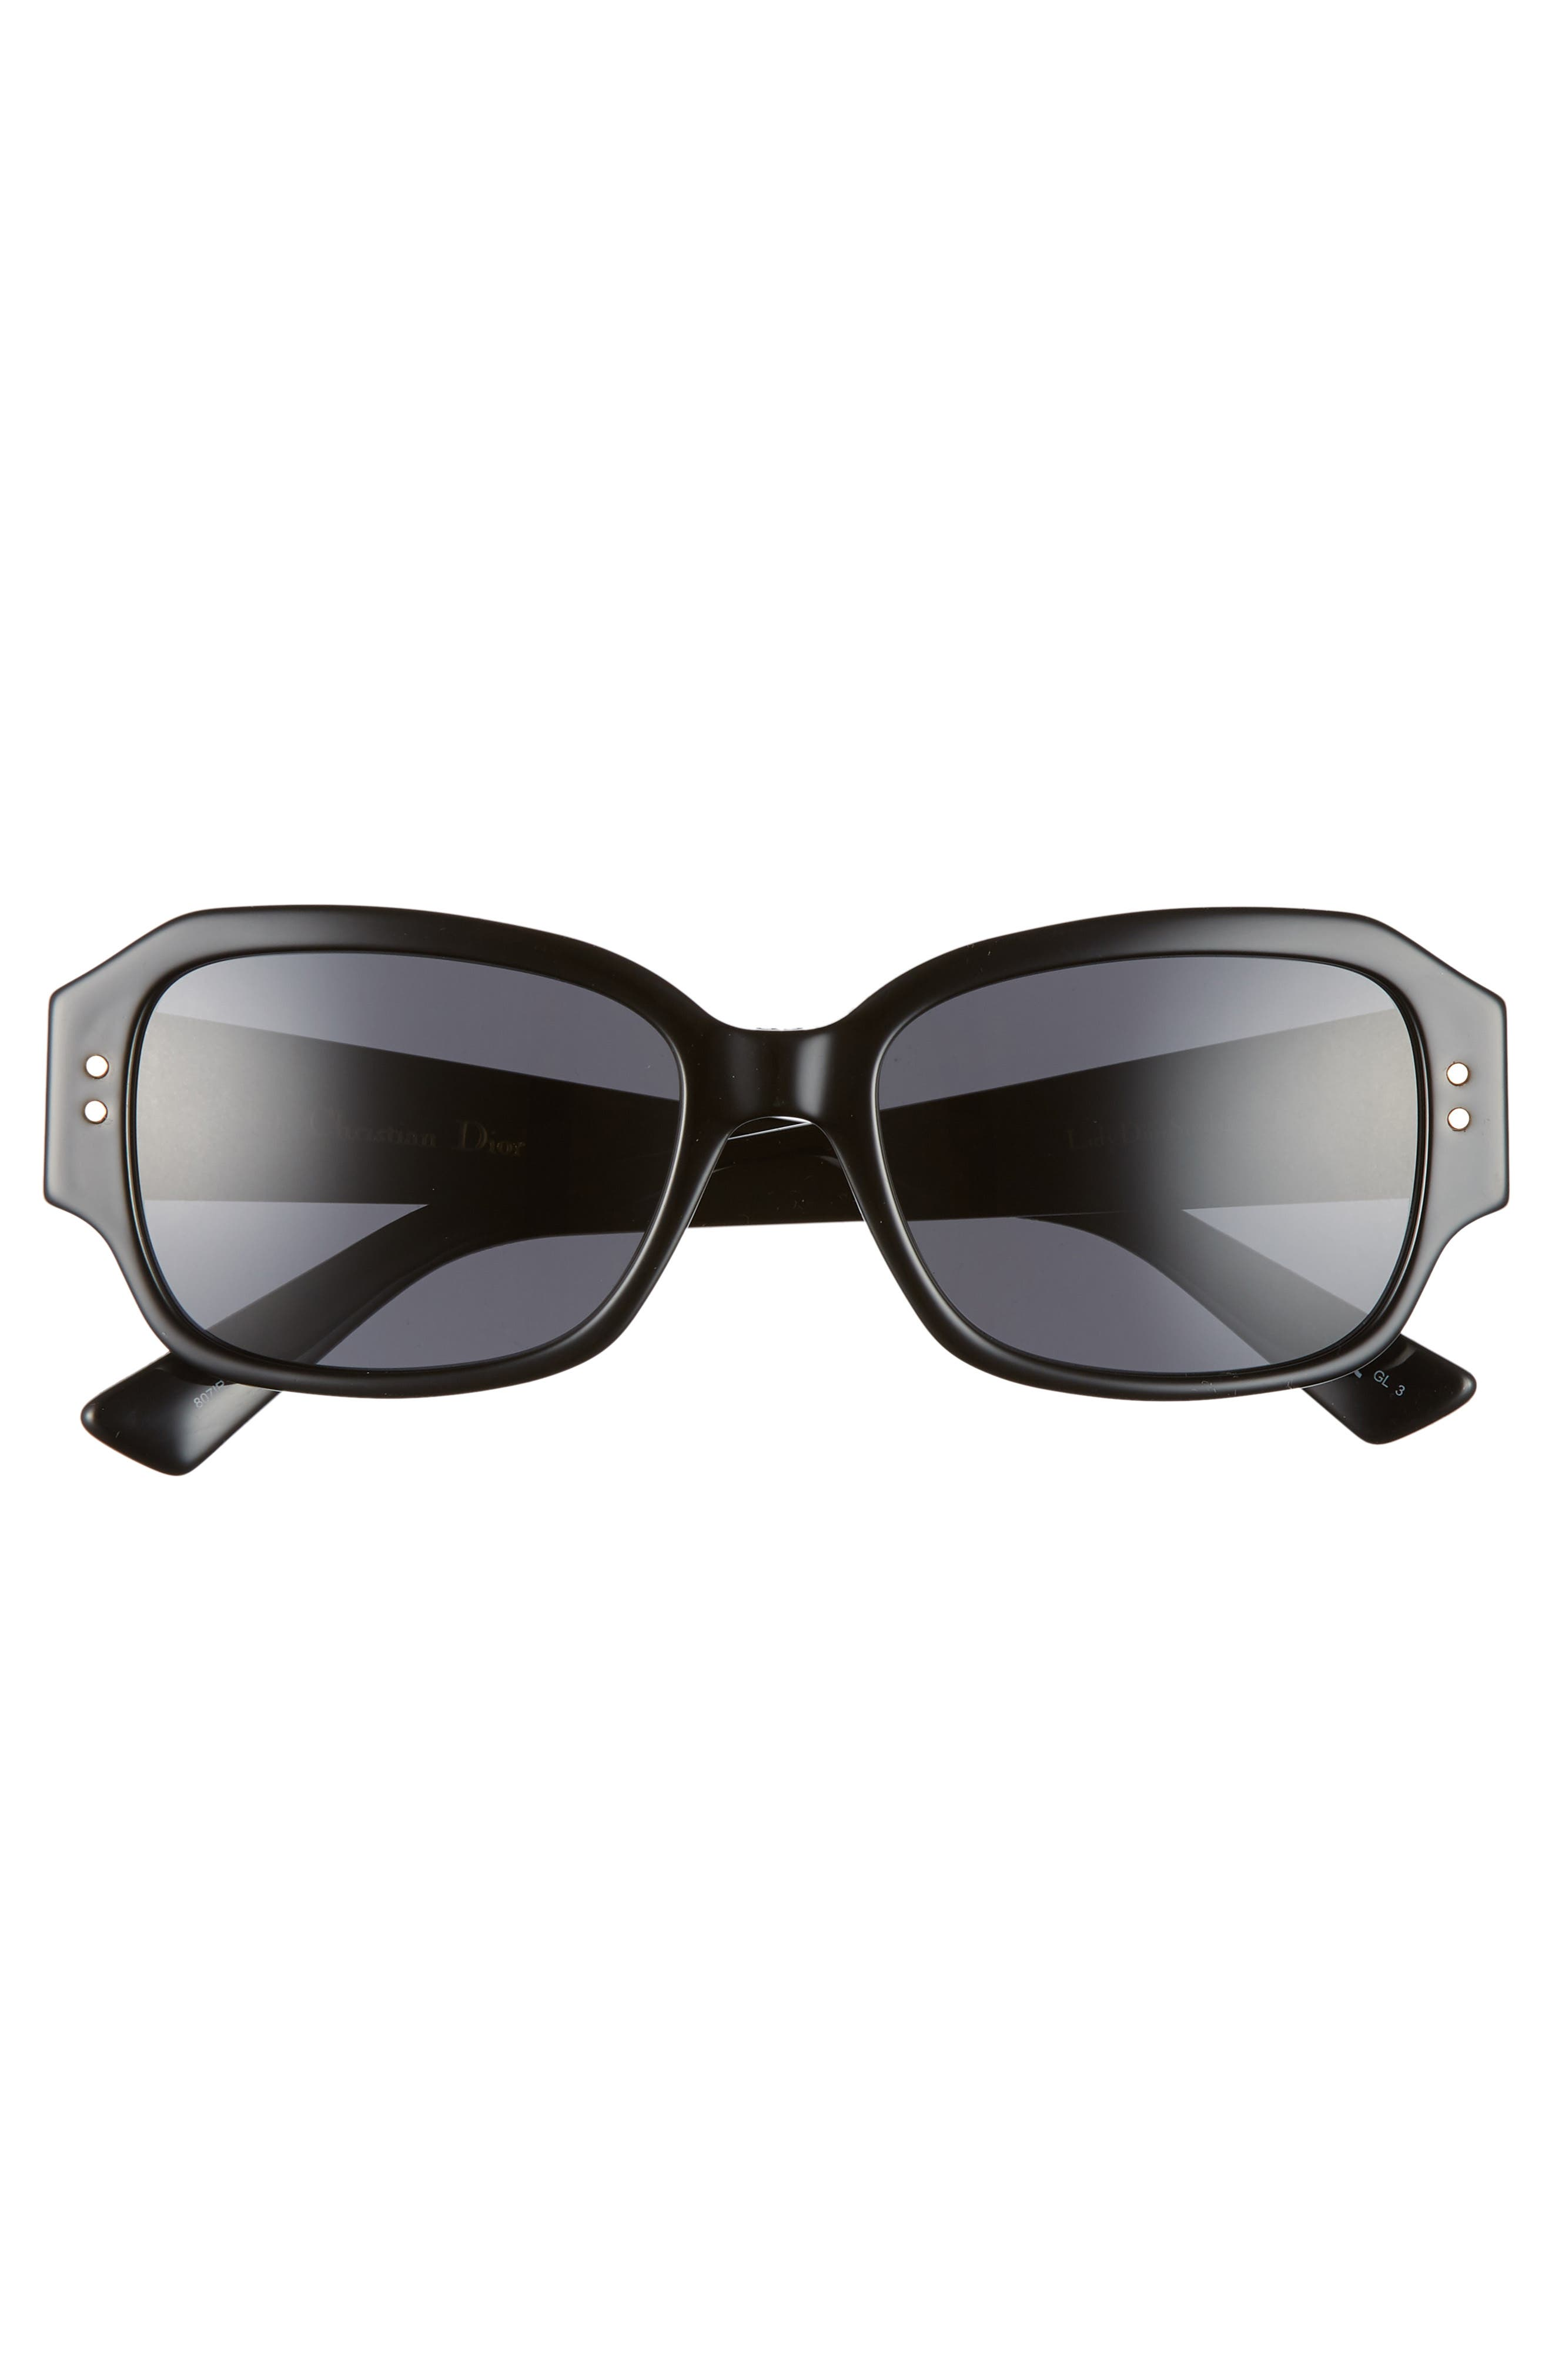 DIOR, Ladydiorstuds5 54mm Sunglasses, Alternate thumbnail 3, color, BLACK